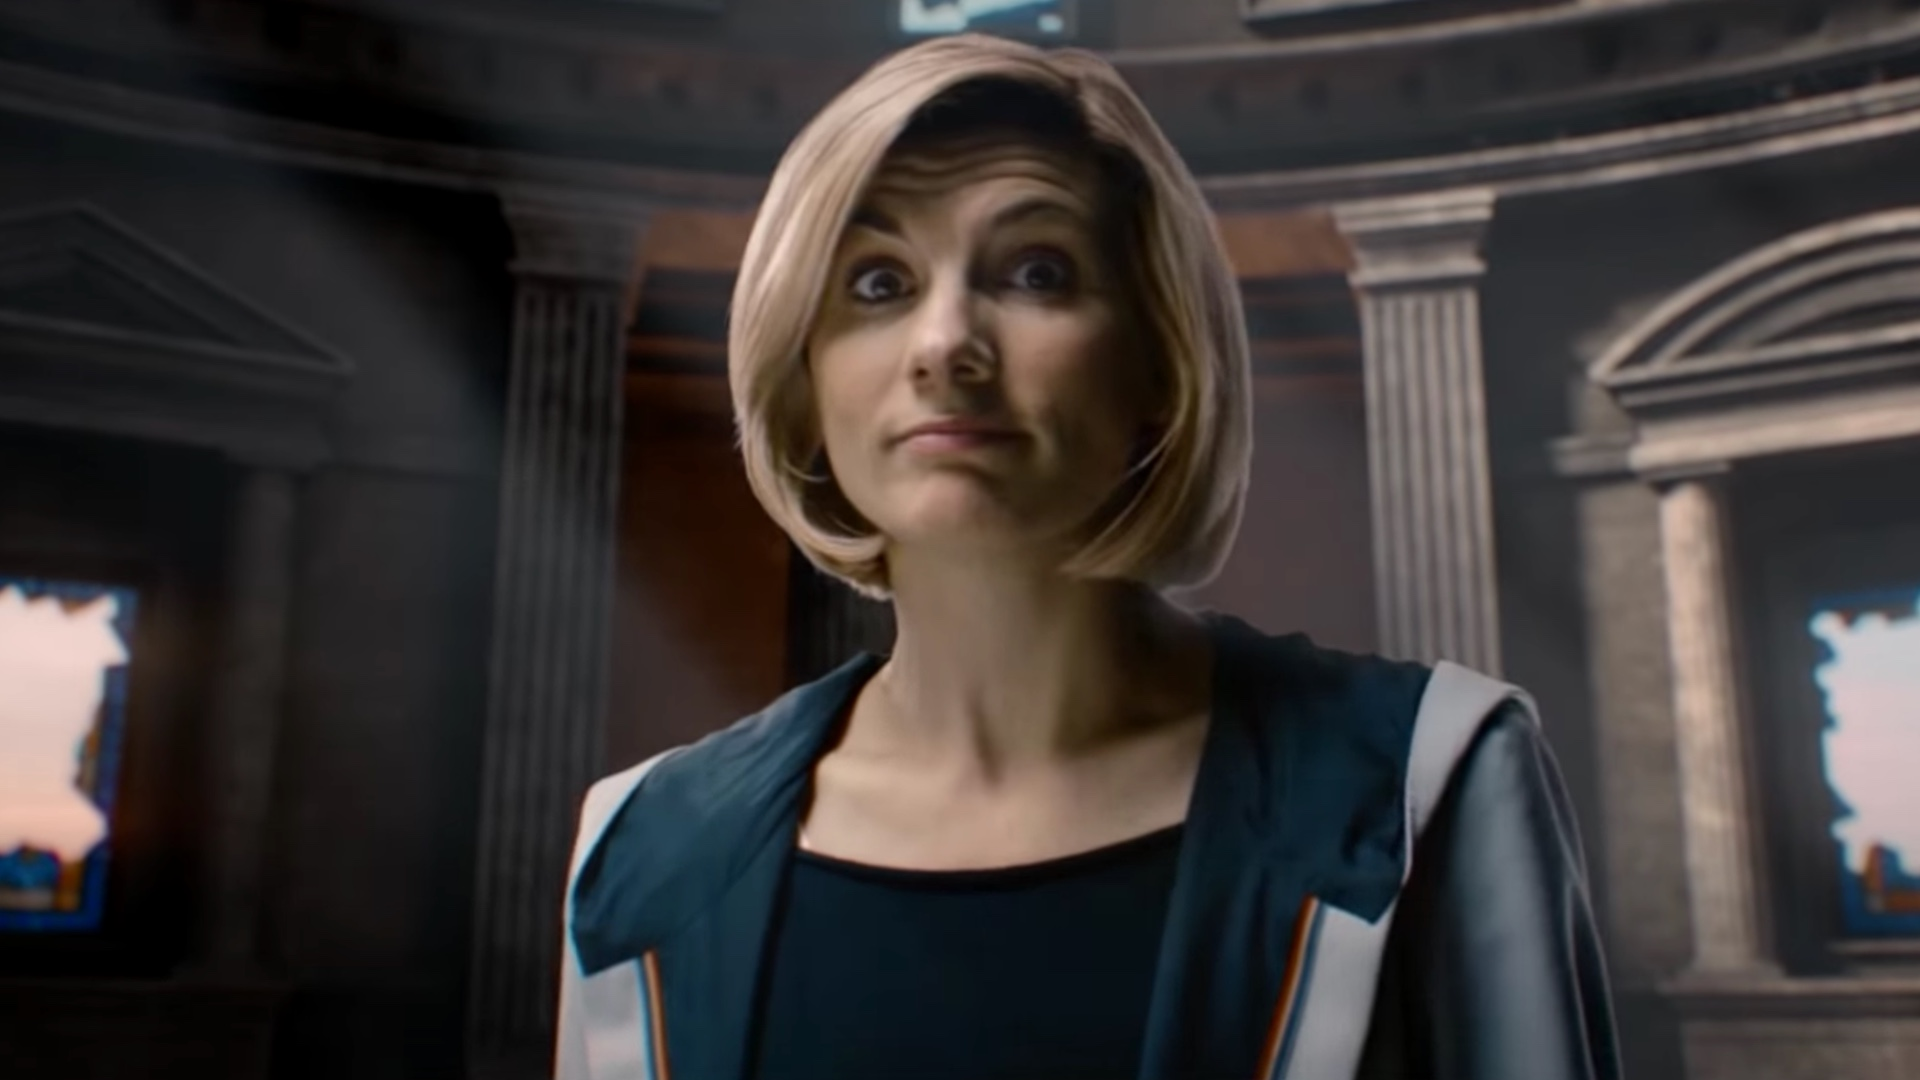 Enjoy A Cheeky New Promo Spot For Doctor Who Season 11 With Jodie